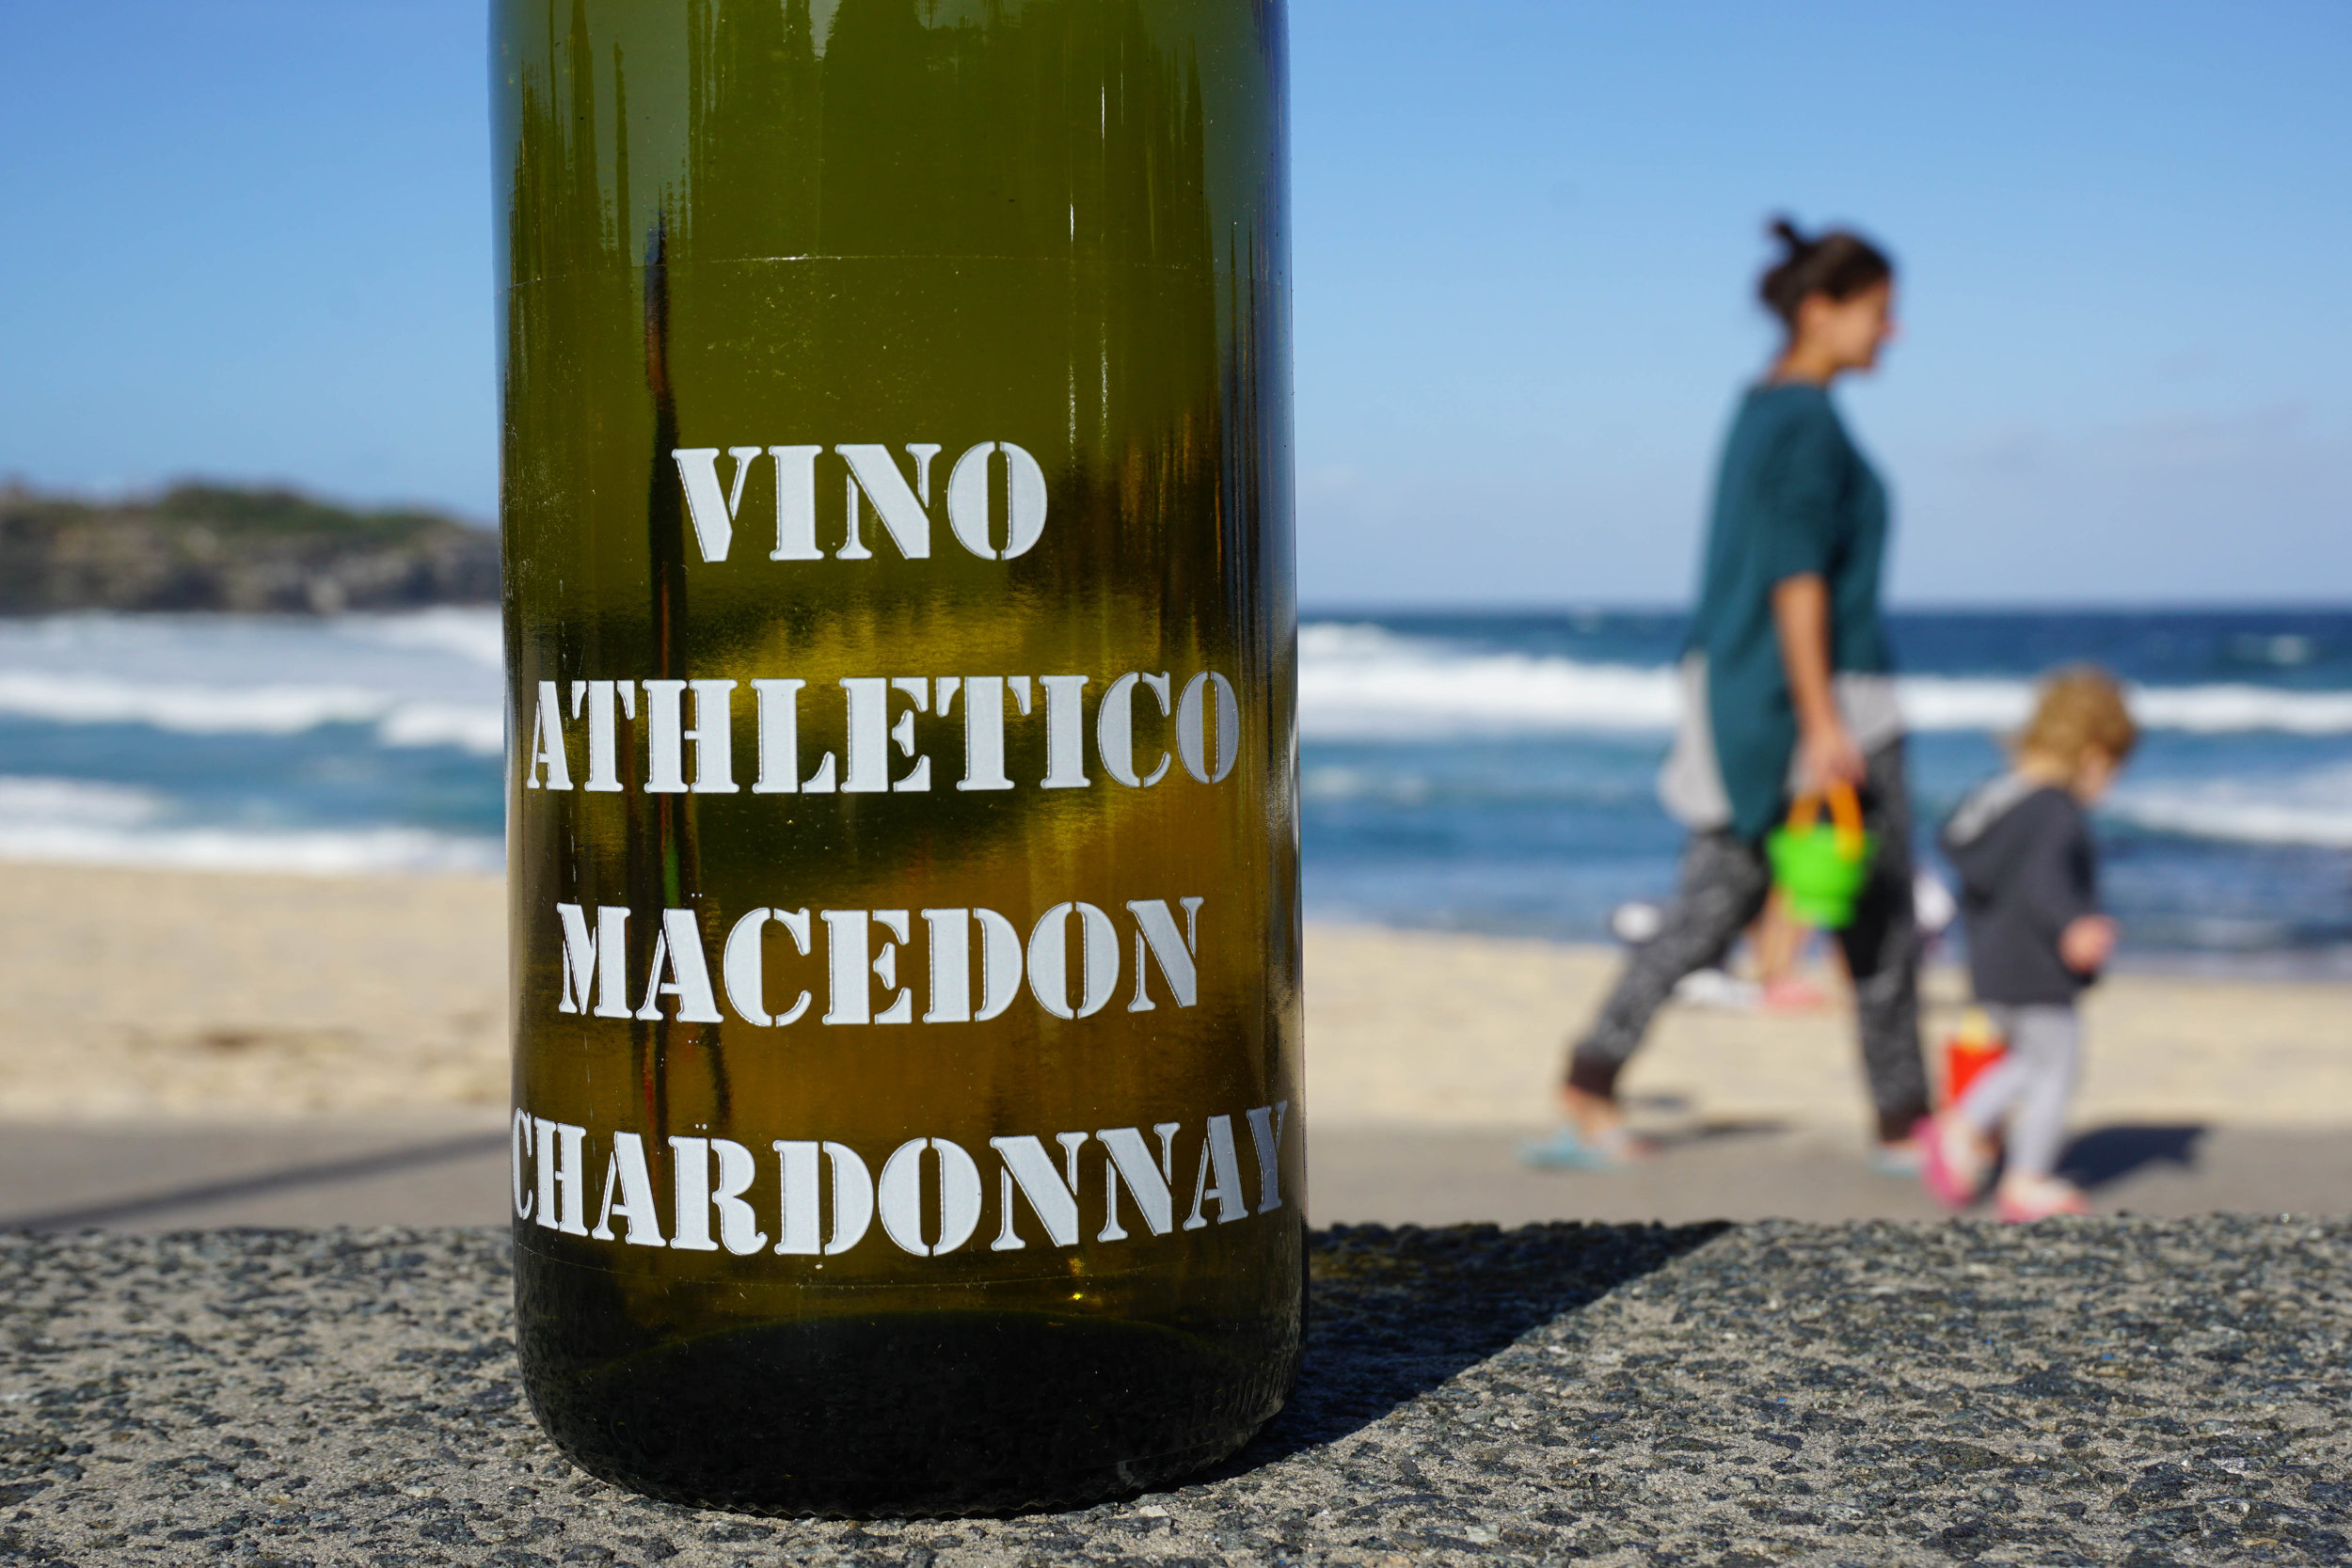 2016 Athletes Of Wine 'Vino Athlético' Chardonnay  Organic Practices  ineyards: 77% Kyneton and 23% Romsey, Macedon Ranges Harvest: 2nd and 3rd March; ave. 2.2 ton/acre     Wild yeast fermented and aged on lees in old hogsheads for 10 months; no battonage; no malo; bottled unfiltered and lightly fined. 60ppm total SO2  Total production: 287 dozen